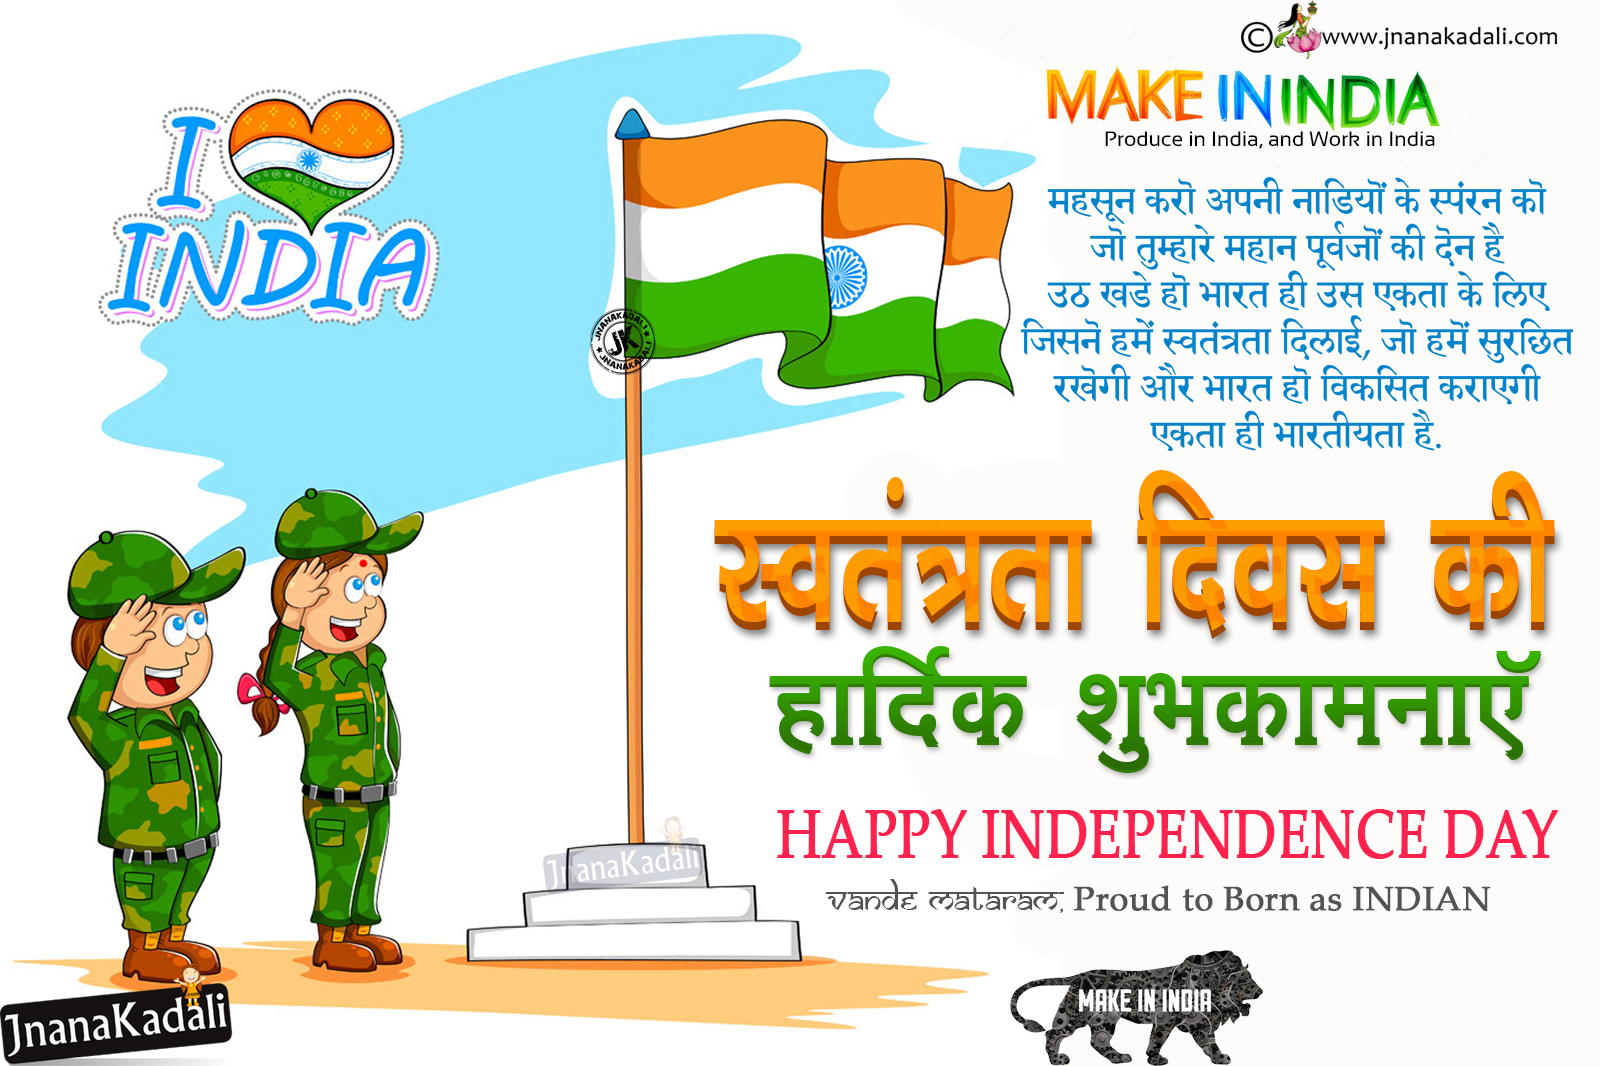 Independence Day Heart Touching Inspirational Quotes With Swatantra